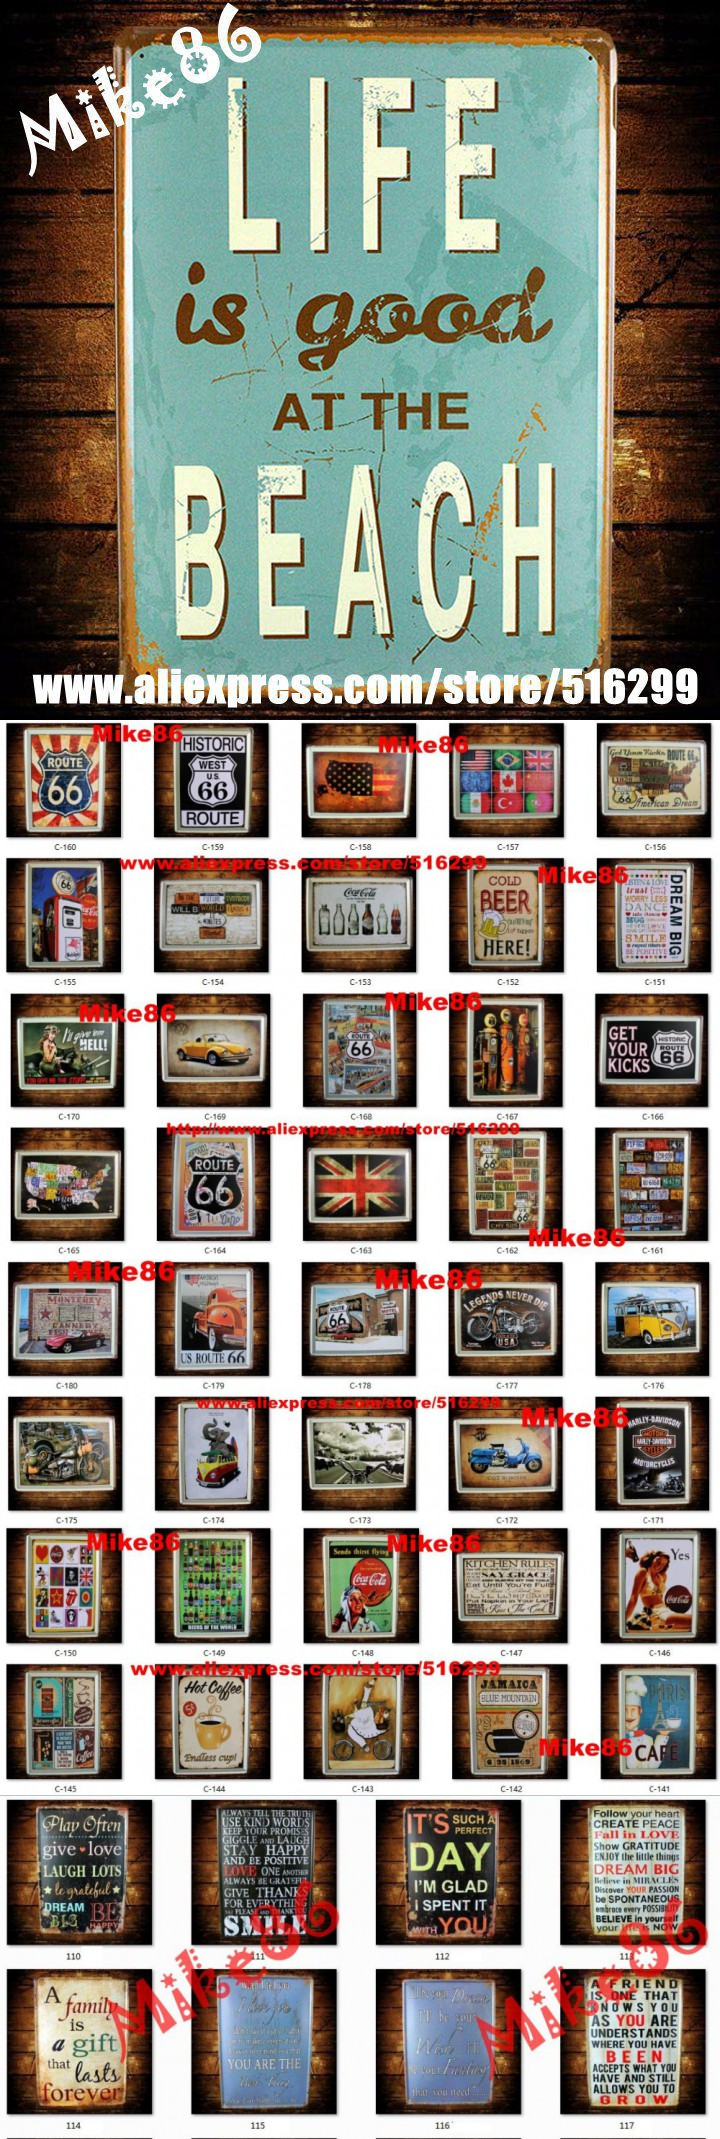 [ Mike86 ] LIFE is good at the Beach Painting Art Home Retro Tin Sign Pub Decor 30*40 CM C-231 $27